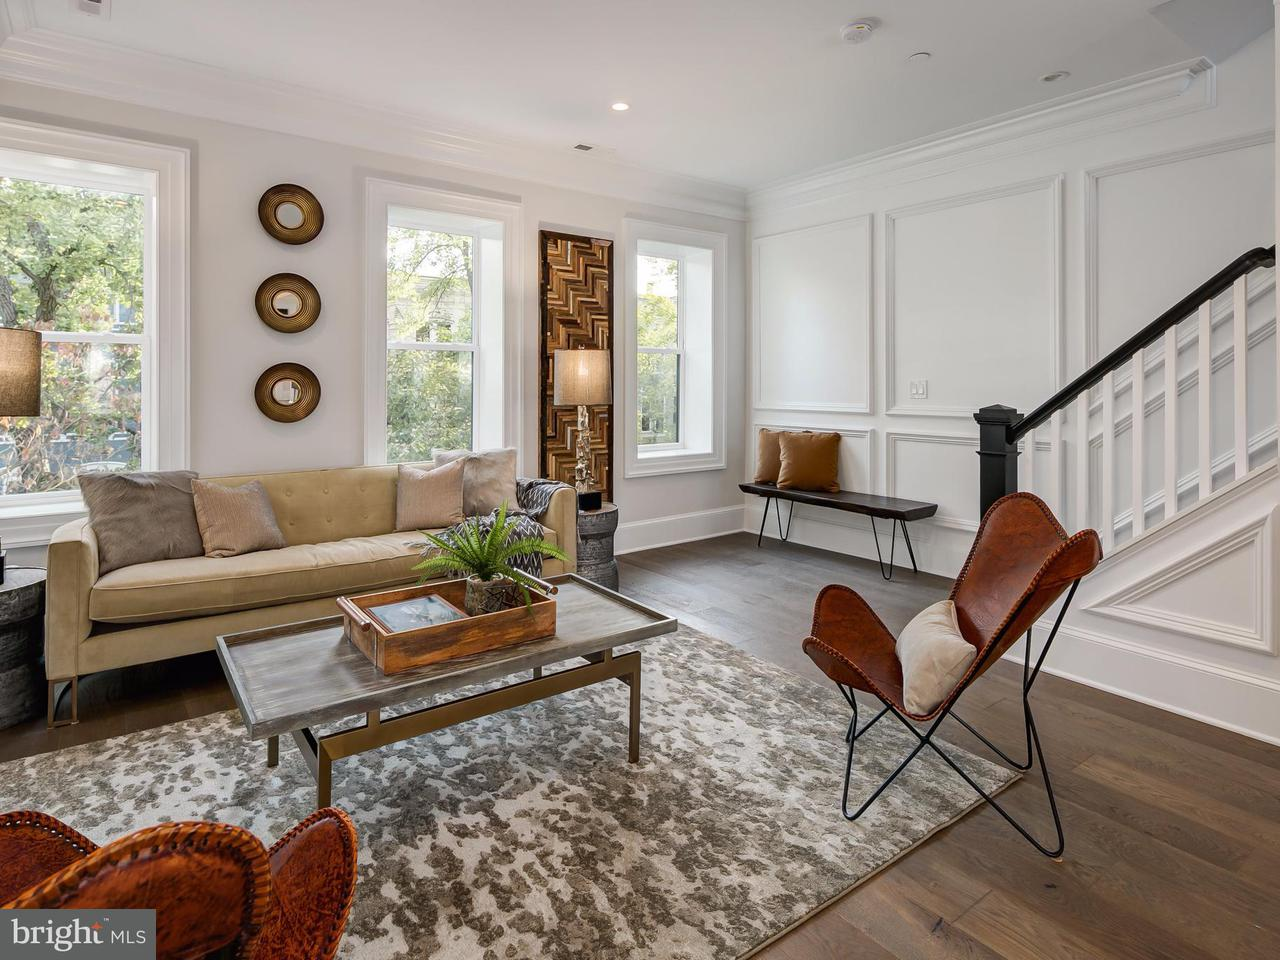 Additional photo for property listing at 1307 Riggs St Nw #2 1307 Riggs St Nw #2 Washington, 哥倫比亞特區 20005 美國